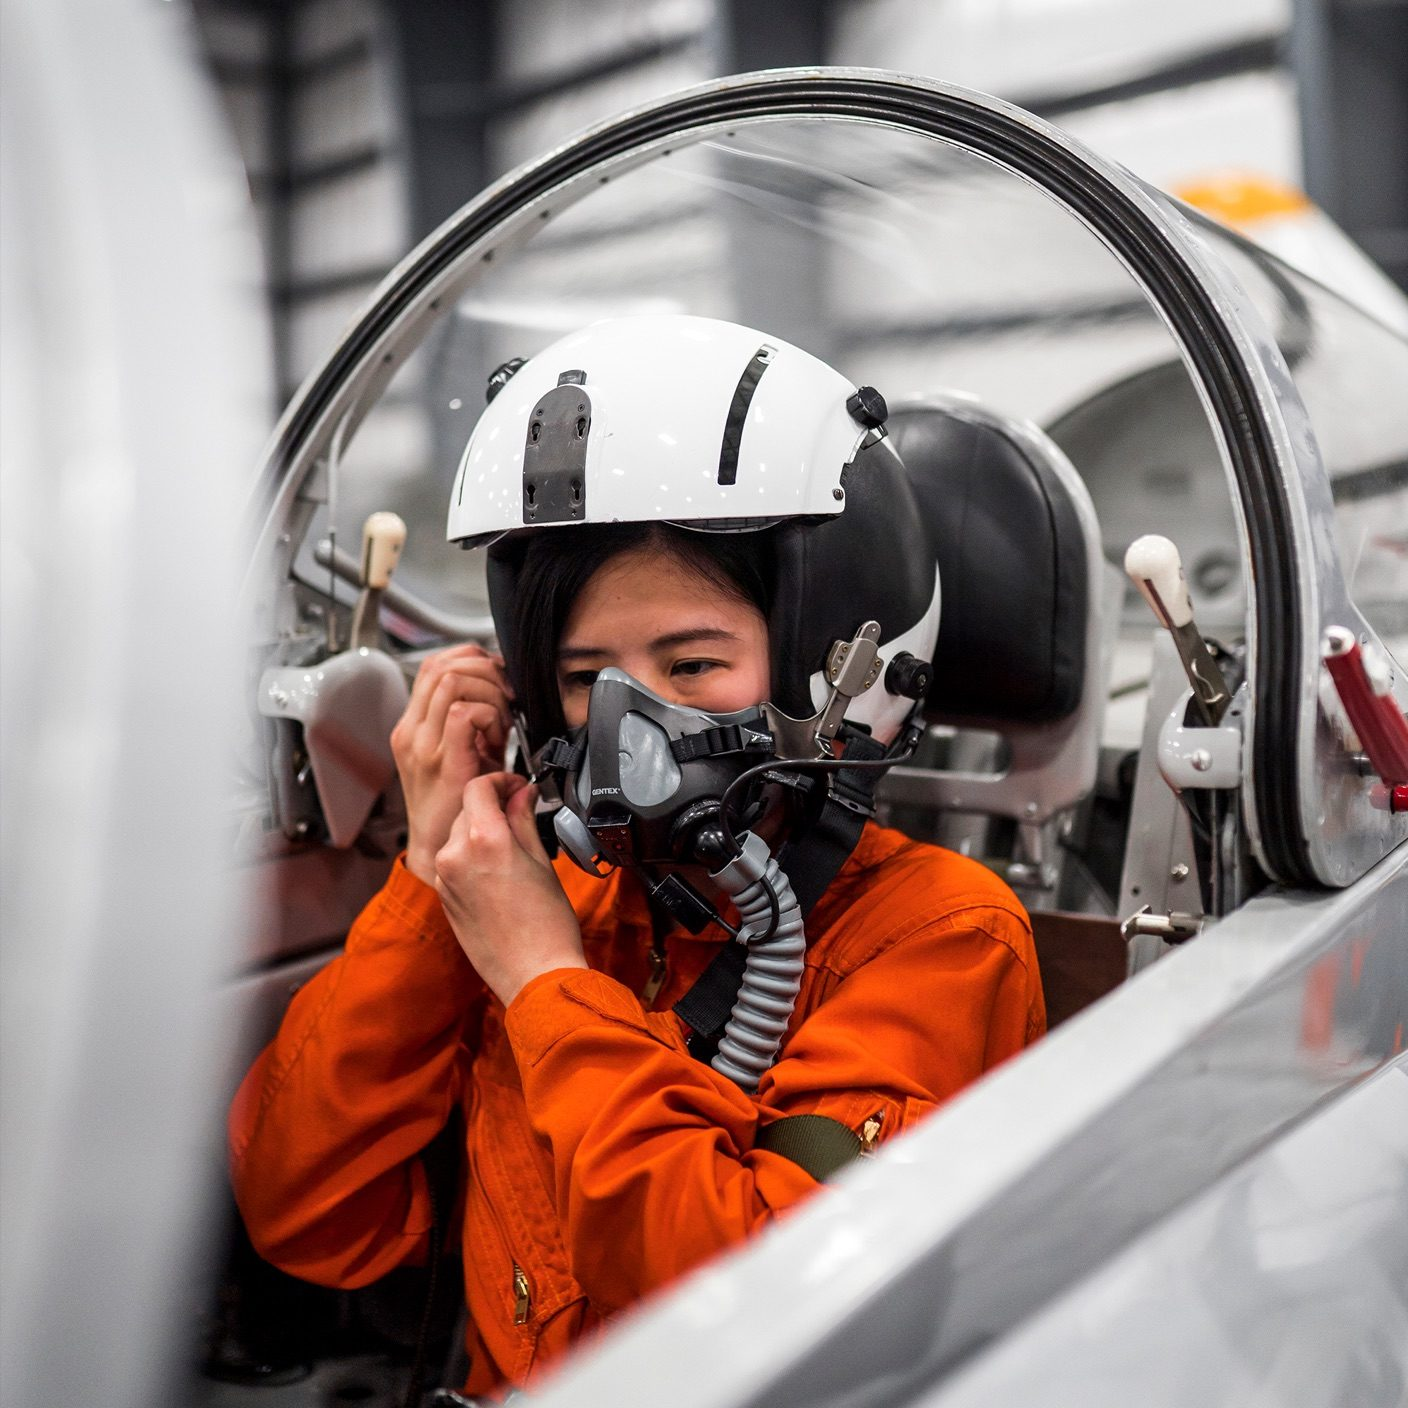 pilot in an orange suit putting on her helmet getting ready for takeoff